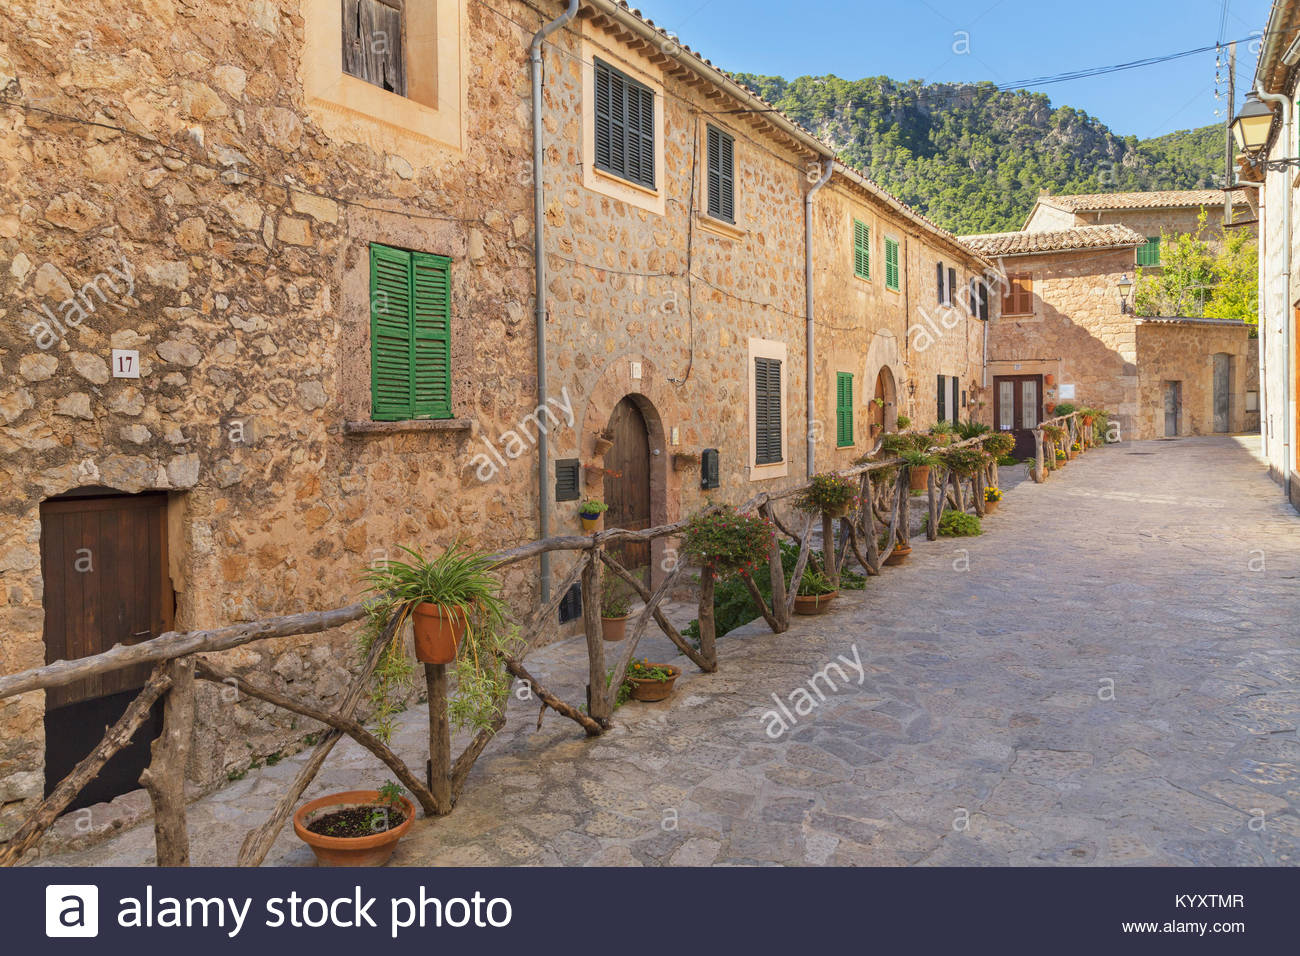 Valldemossa, Mallorca, Balearic Islands, Spain, Europe - Stock Image